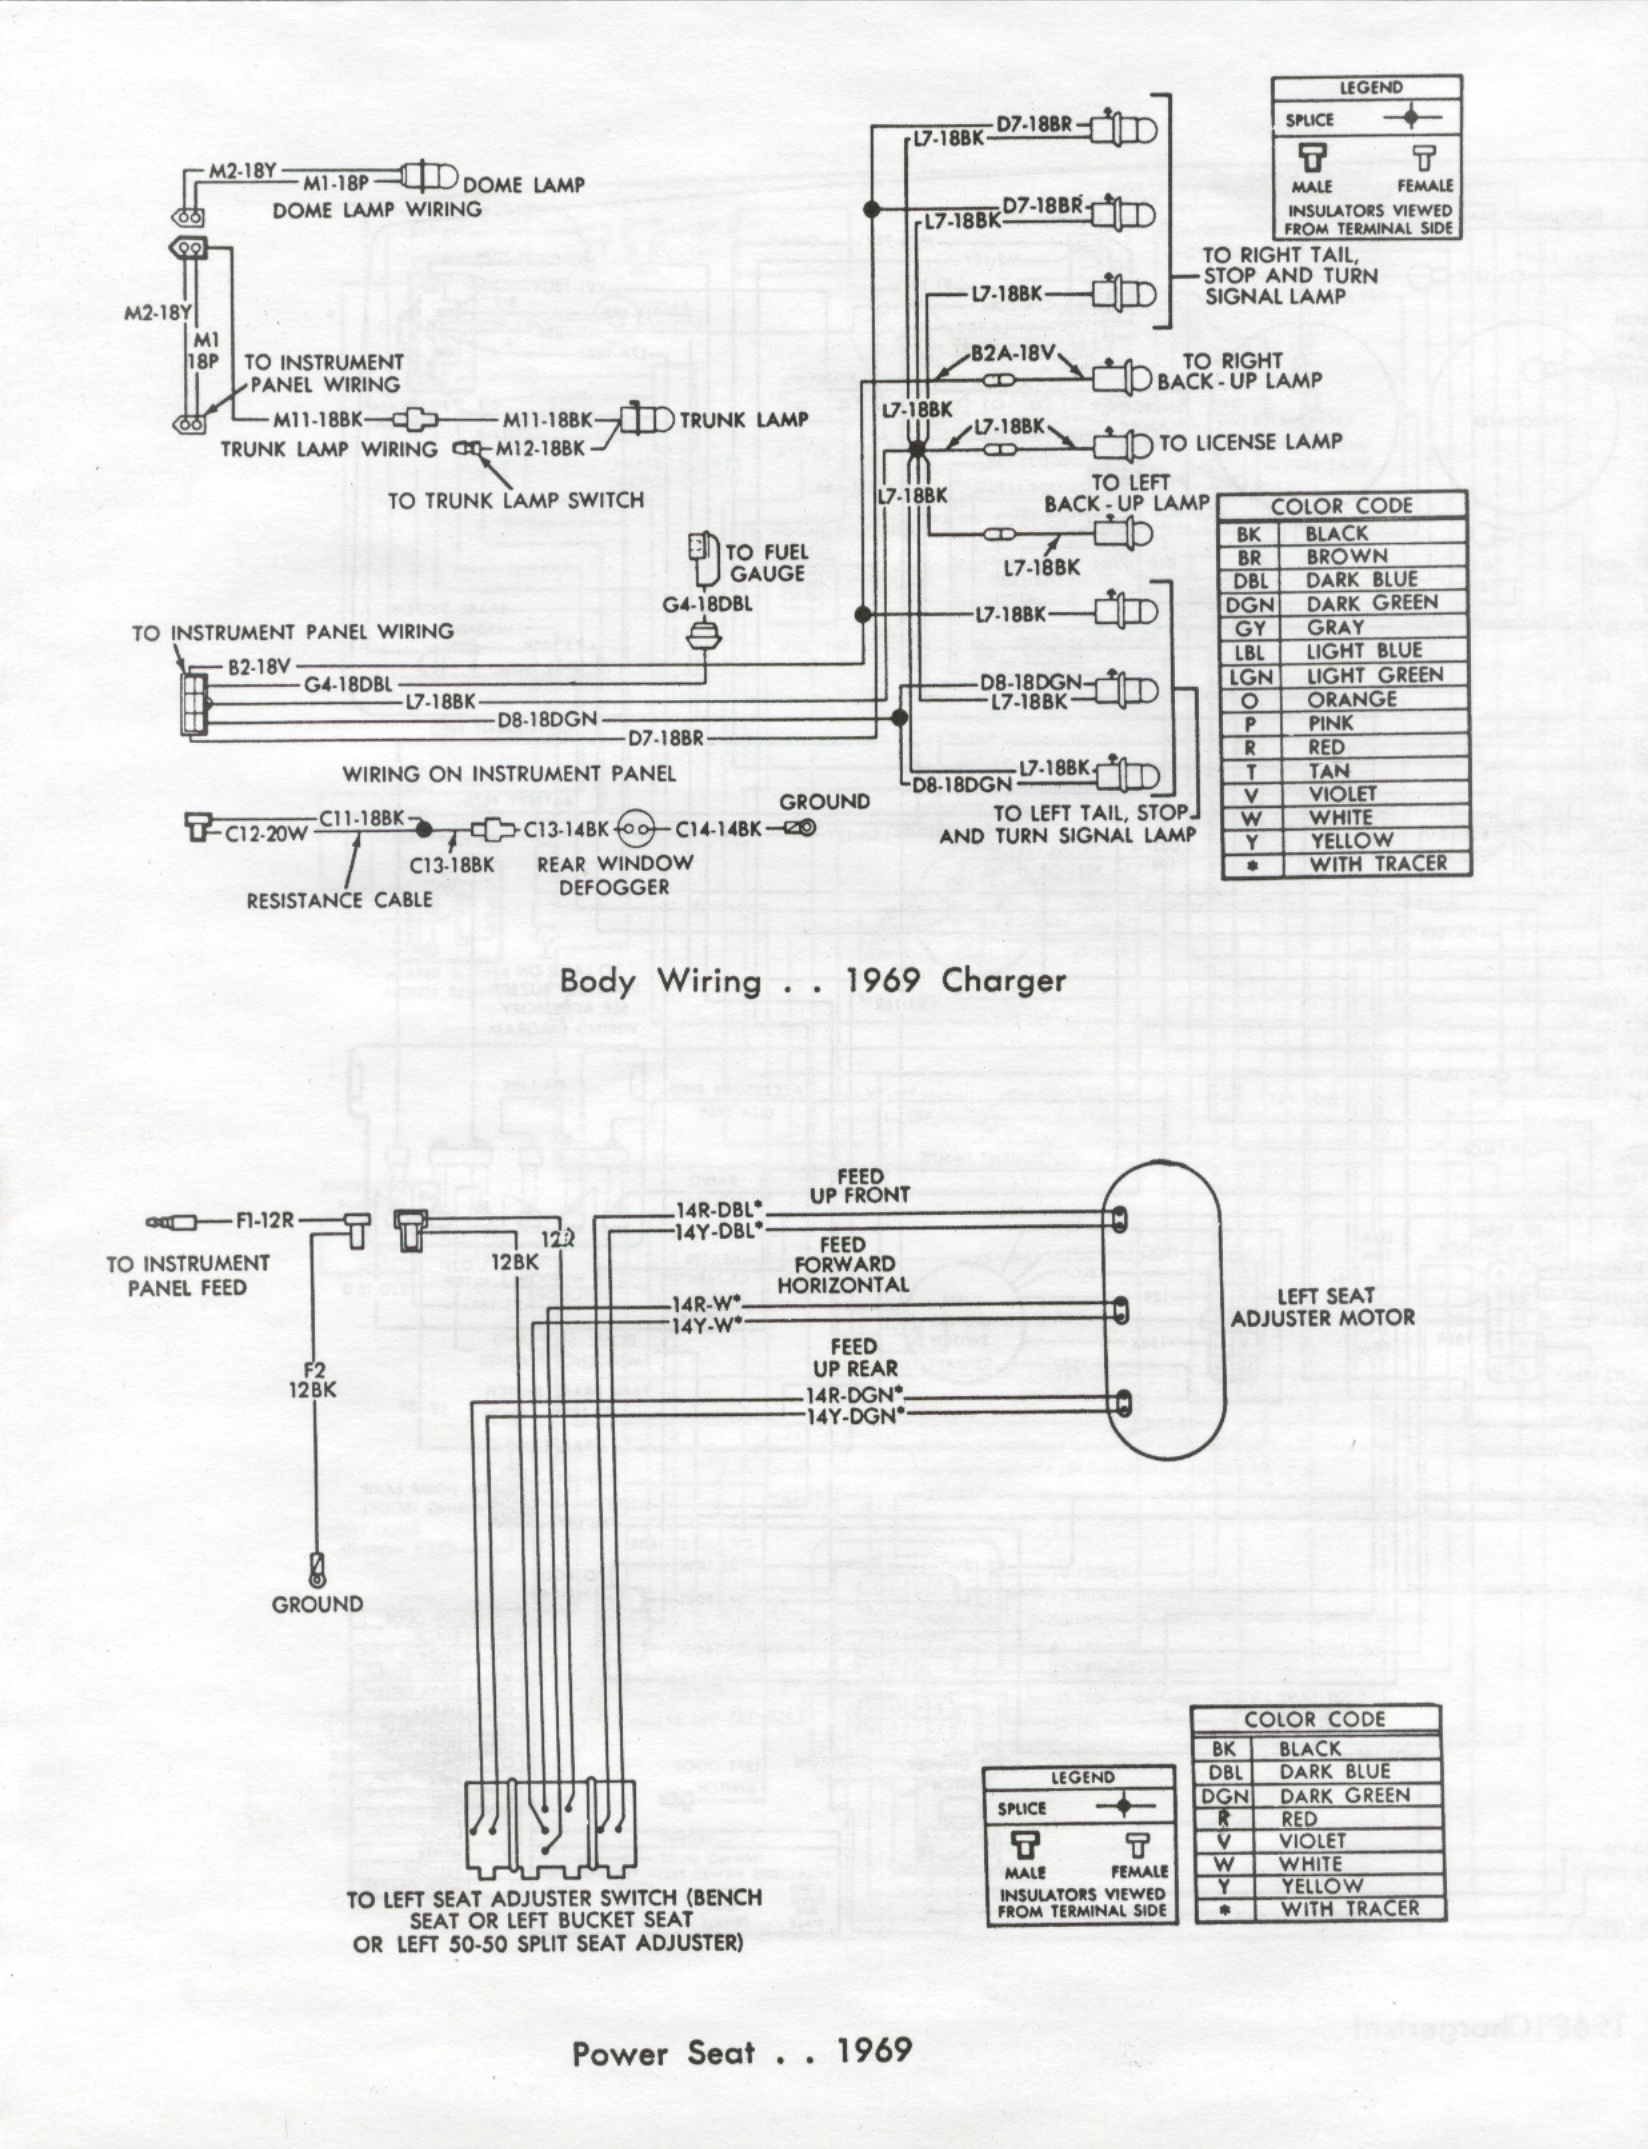 1969 Dodge Coronet Wiring Diagram, 1969, Free Engine Image